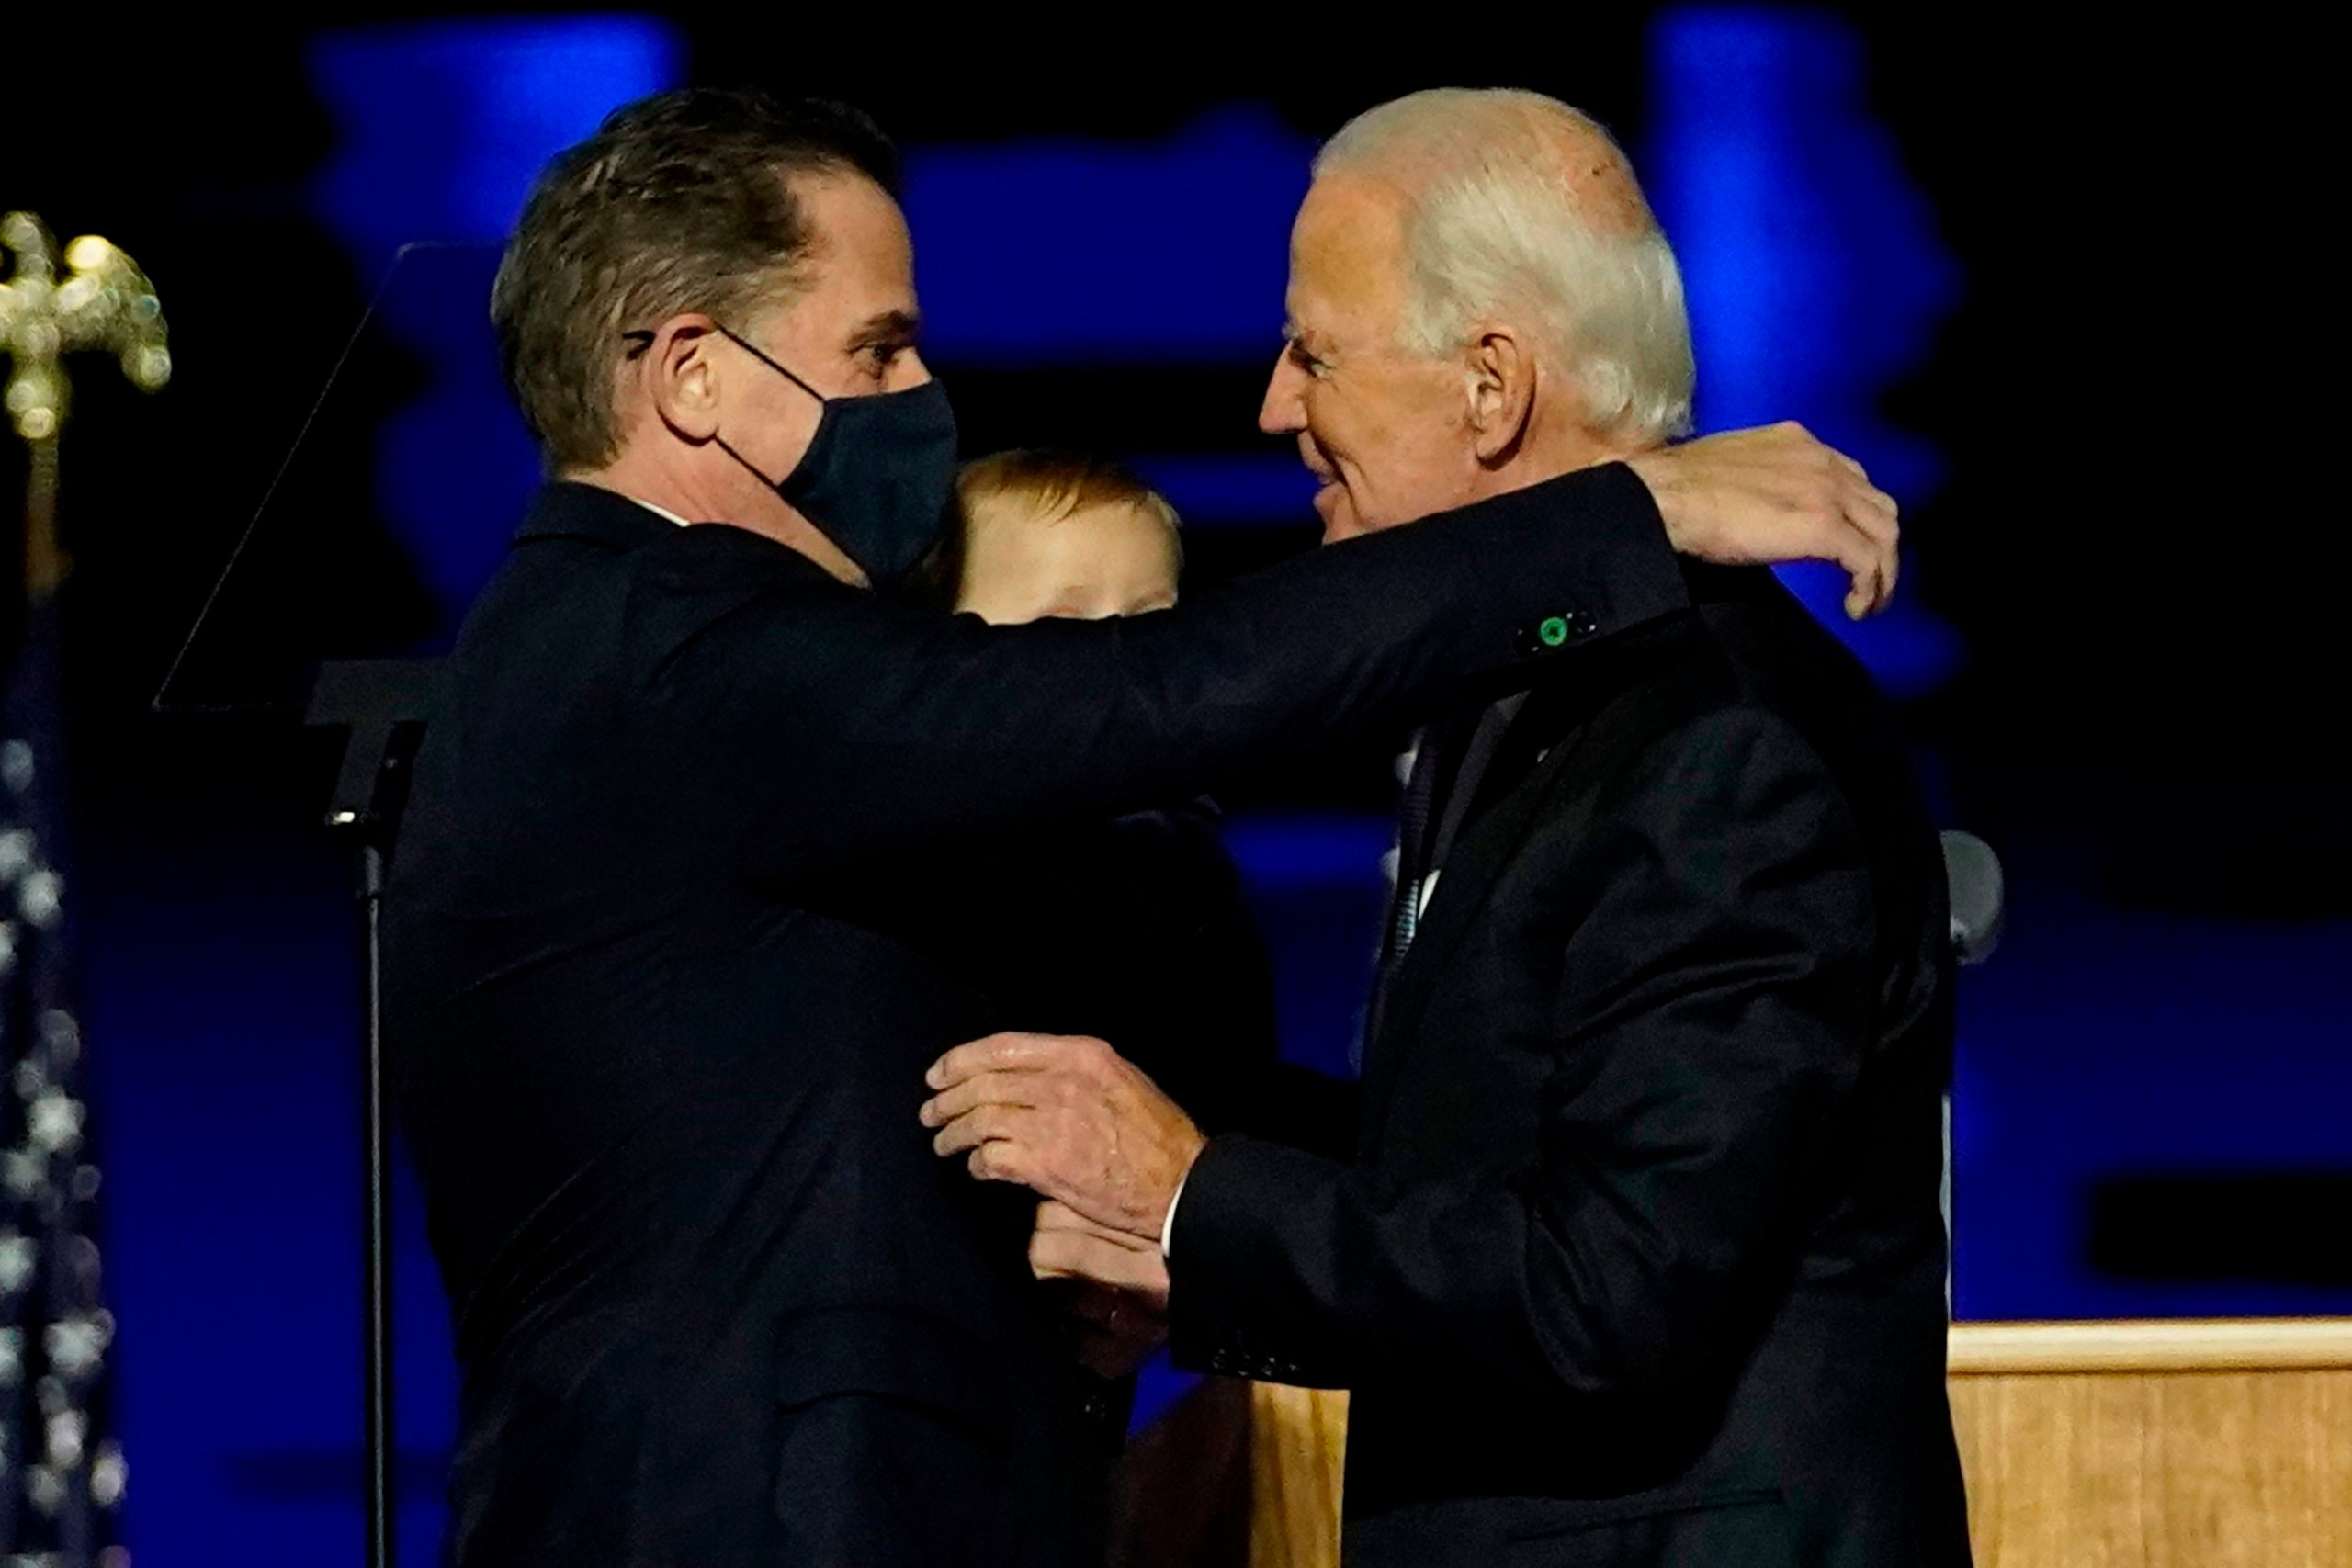 WILMINGTON, DELAWARE - NOVEMBER 07: President-elect Joe Biden embraces his son Hunter Biden after addressing the nation from the Chase Center November 07, 2020 in Wilmington, Delaware. After four days of counting the high volume of mail-in ballots in key battleground states due to the coronavirus pandemic, the race was called for Biden after a contentious election battle against incumbent Republican President Donald Trump. (Photo by Andrew Harnik-Pool/Getty Images)